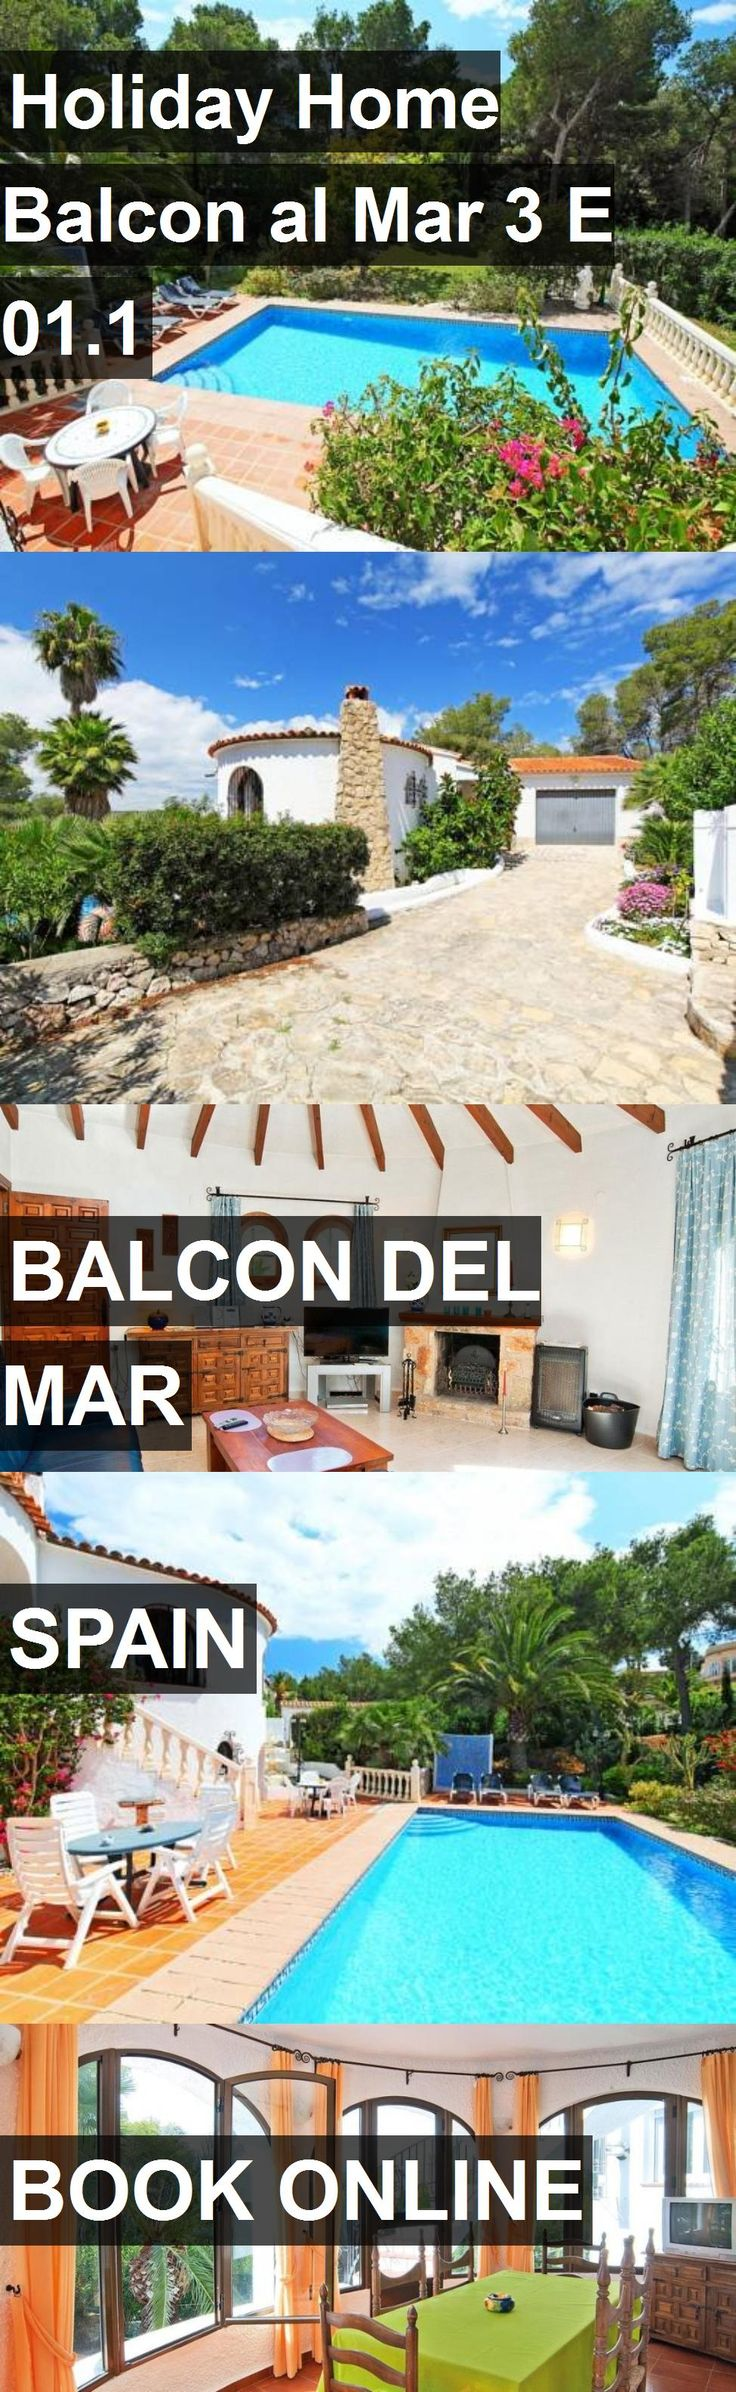 Hotel Holiday Home Balcon al Mar 3 E 01.1 in Balcon del Mar, Spain. For more information, photos, reviews and best prices please follow the link. #Spain #BalcondelMar #travel #vacation #hotel